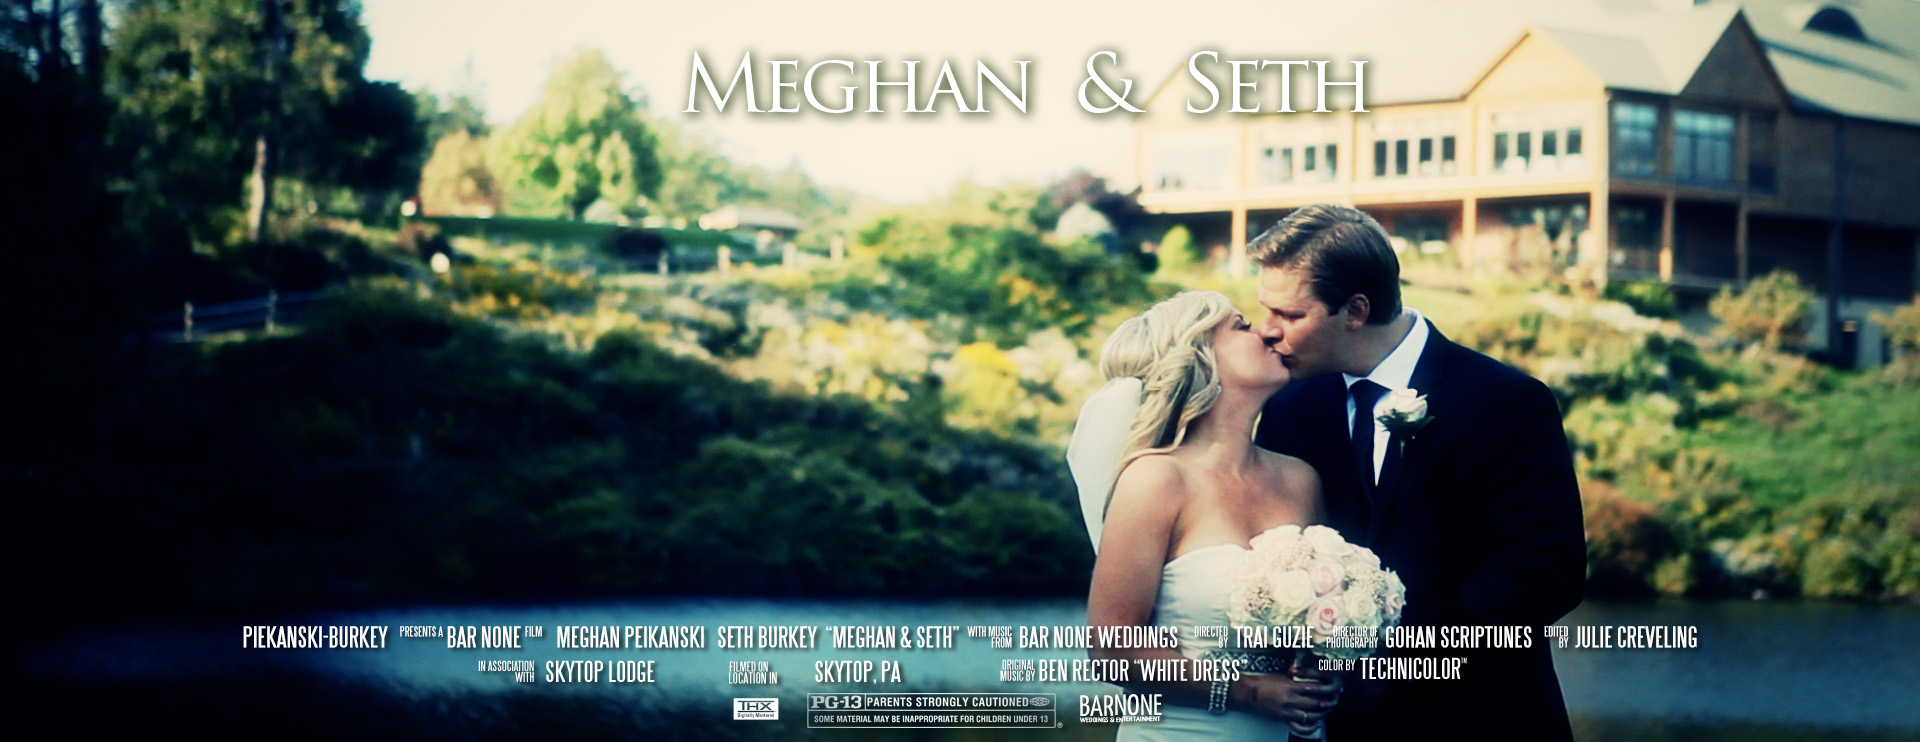 Meghan & Seth – Skytop Lodge Wedding Film – Skytop, PA